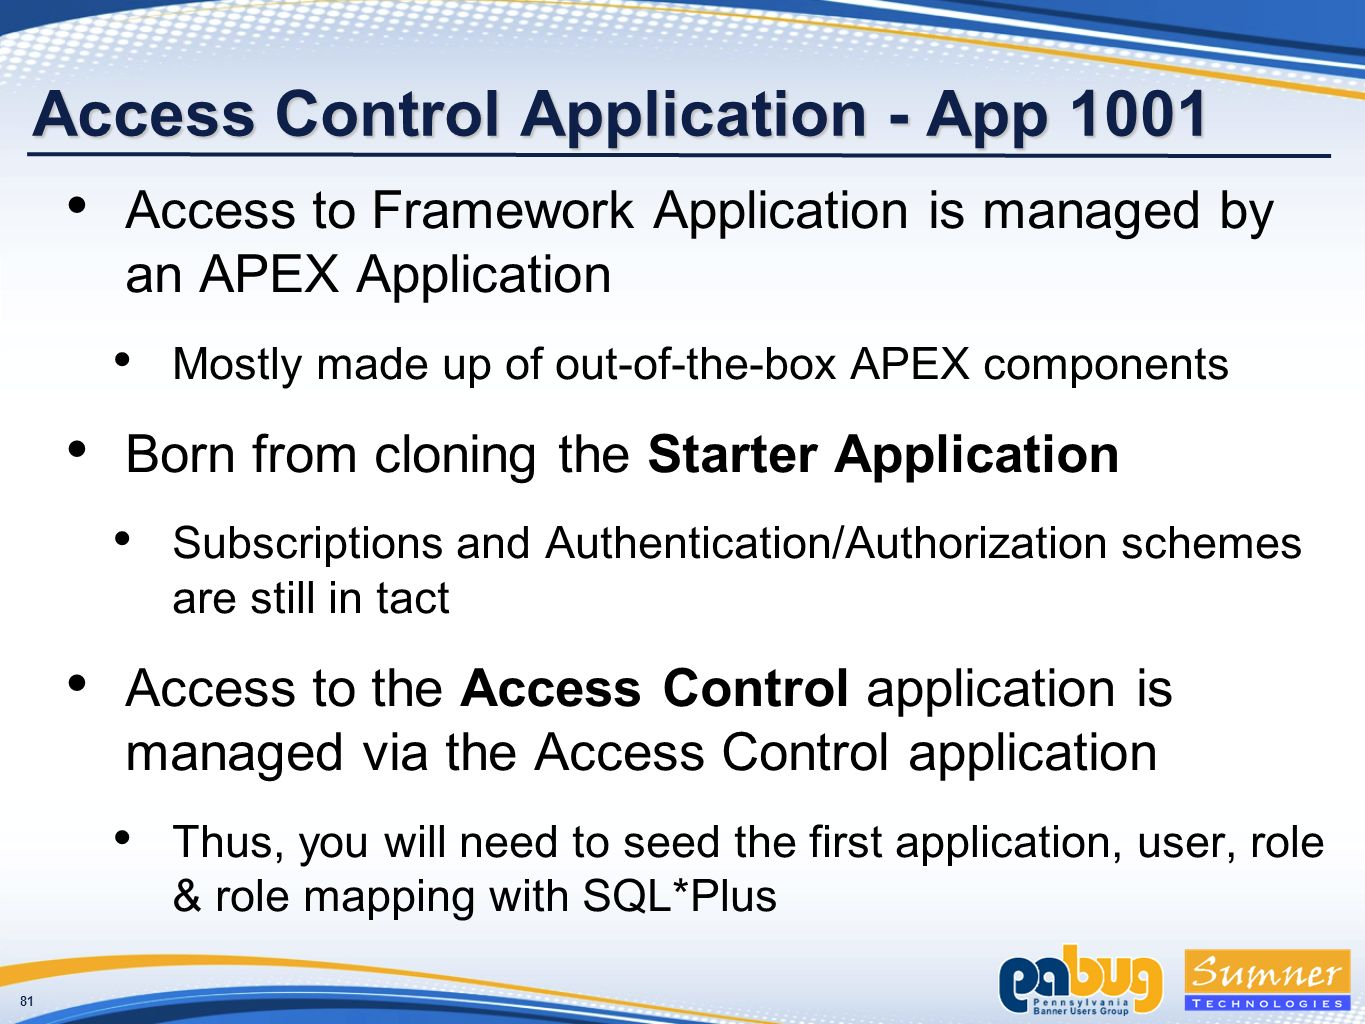 81 Access Control Application - App 1001 Access to Framework Application is managed by an APEX Application Mostly made up of out-of-the-box APEX components Born from cloning the Starter Application Subscriptions and Authentication/Authorization schemes are still in tact Access to the Access Control application is managed via the Access Control application Thus, you will need to seed the first application, user, role & role mapping with SQL*Plus